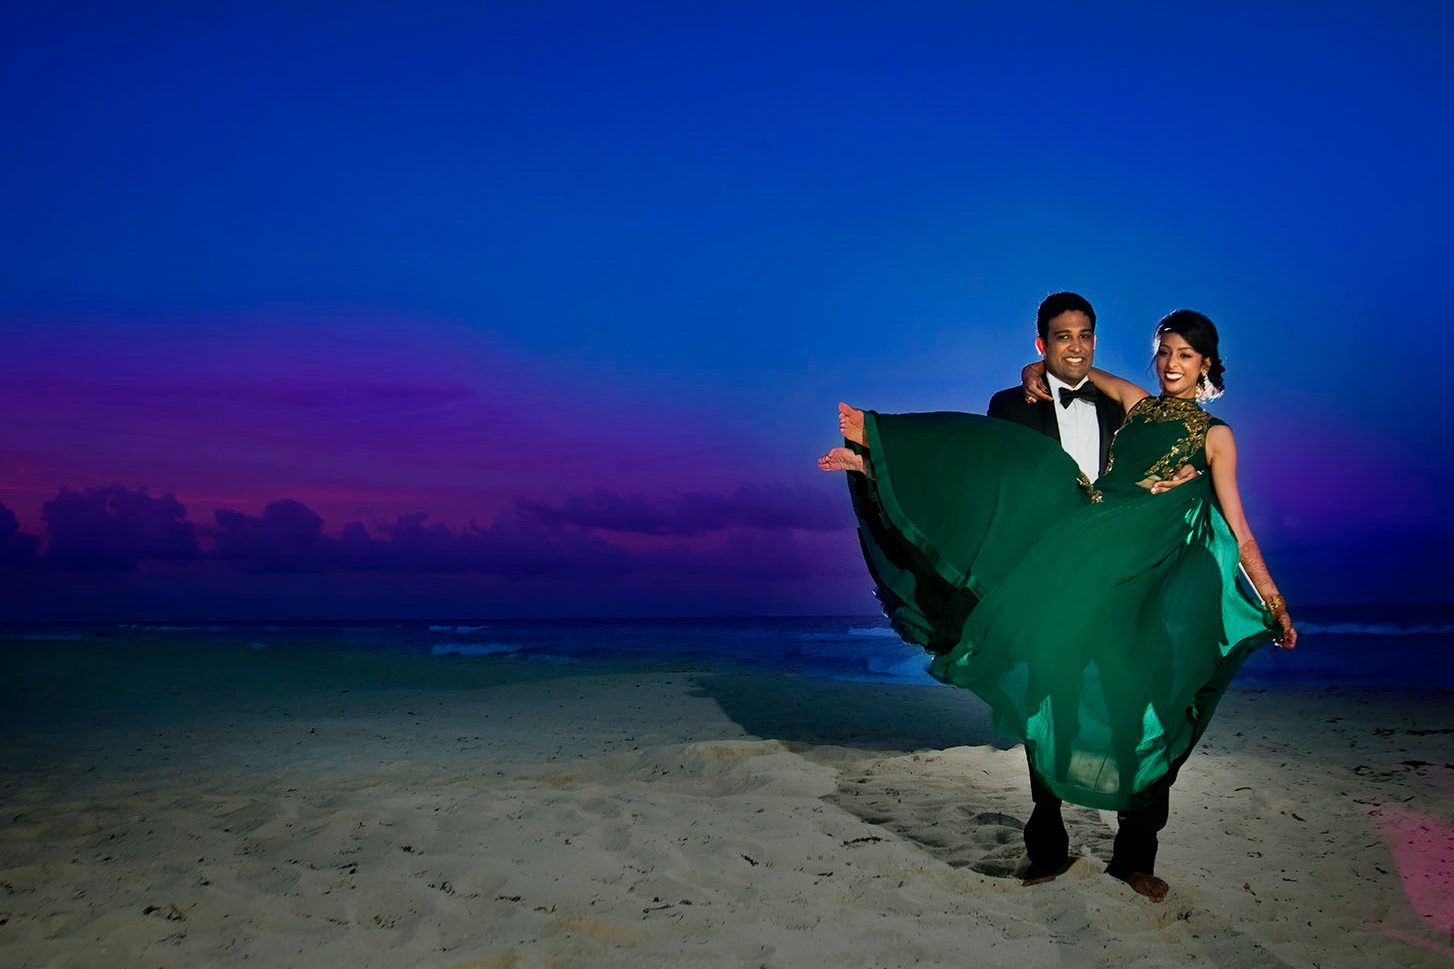 mexico-weddings-krishna-mihir-04.jpg